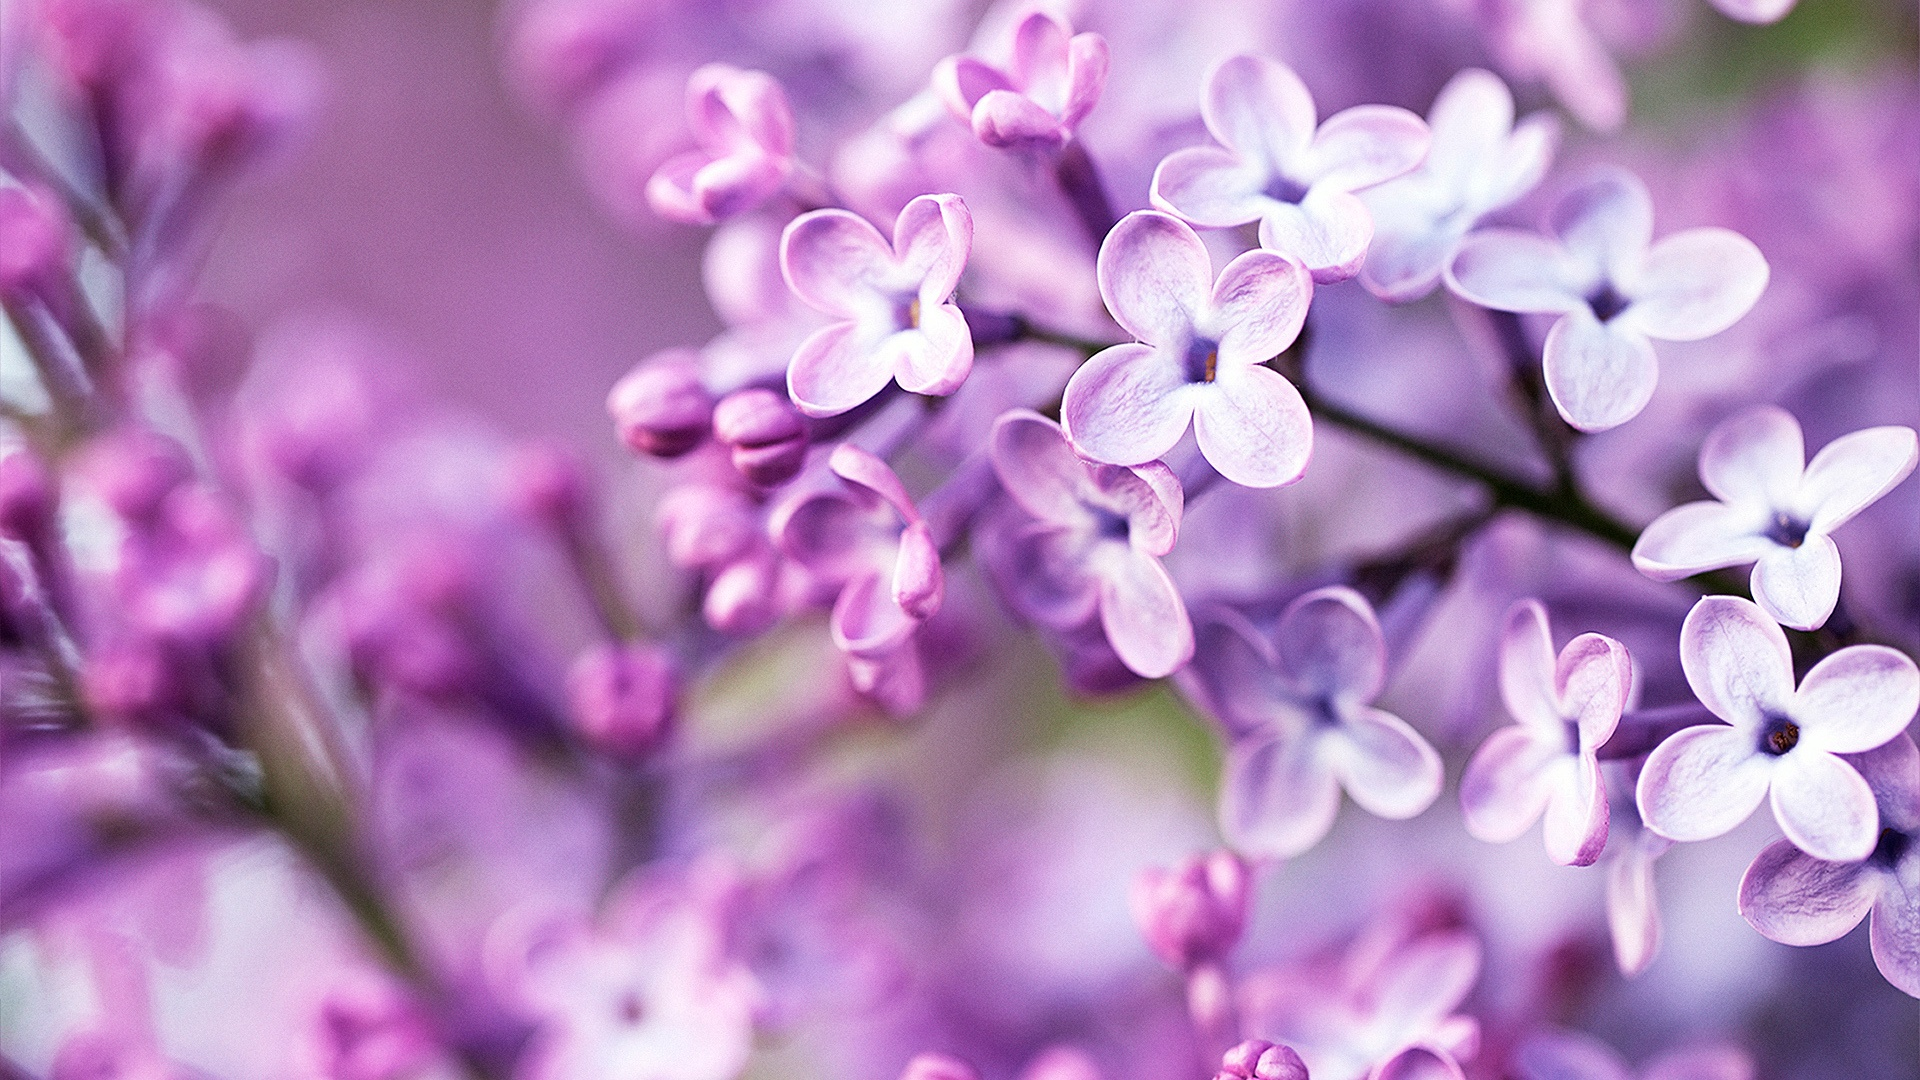 Purple Flower Tumblr Wallpaper 1920x1080 23471